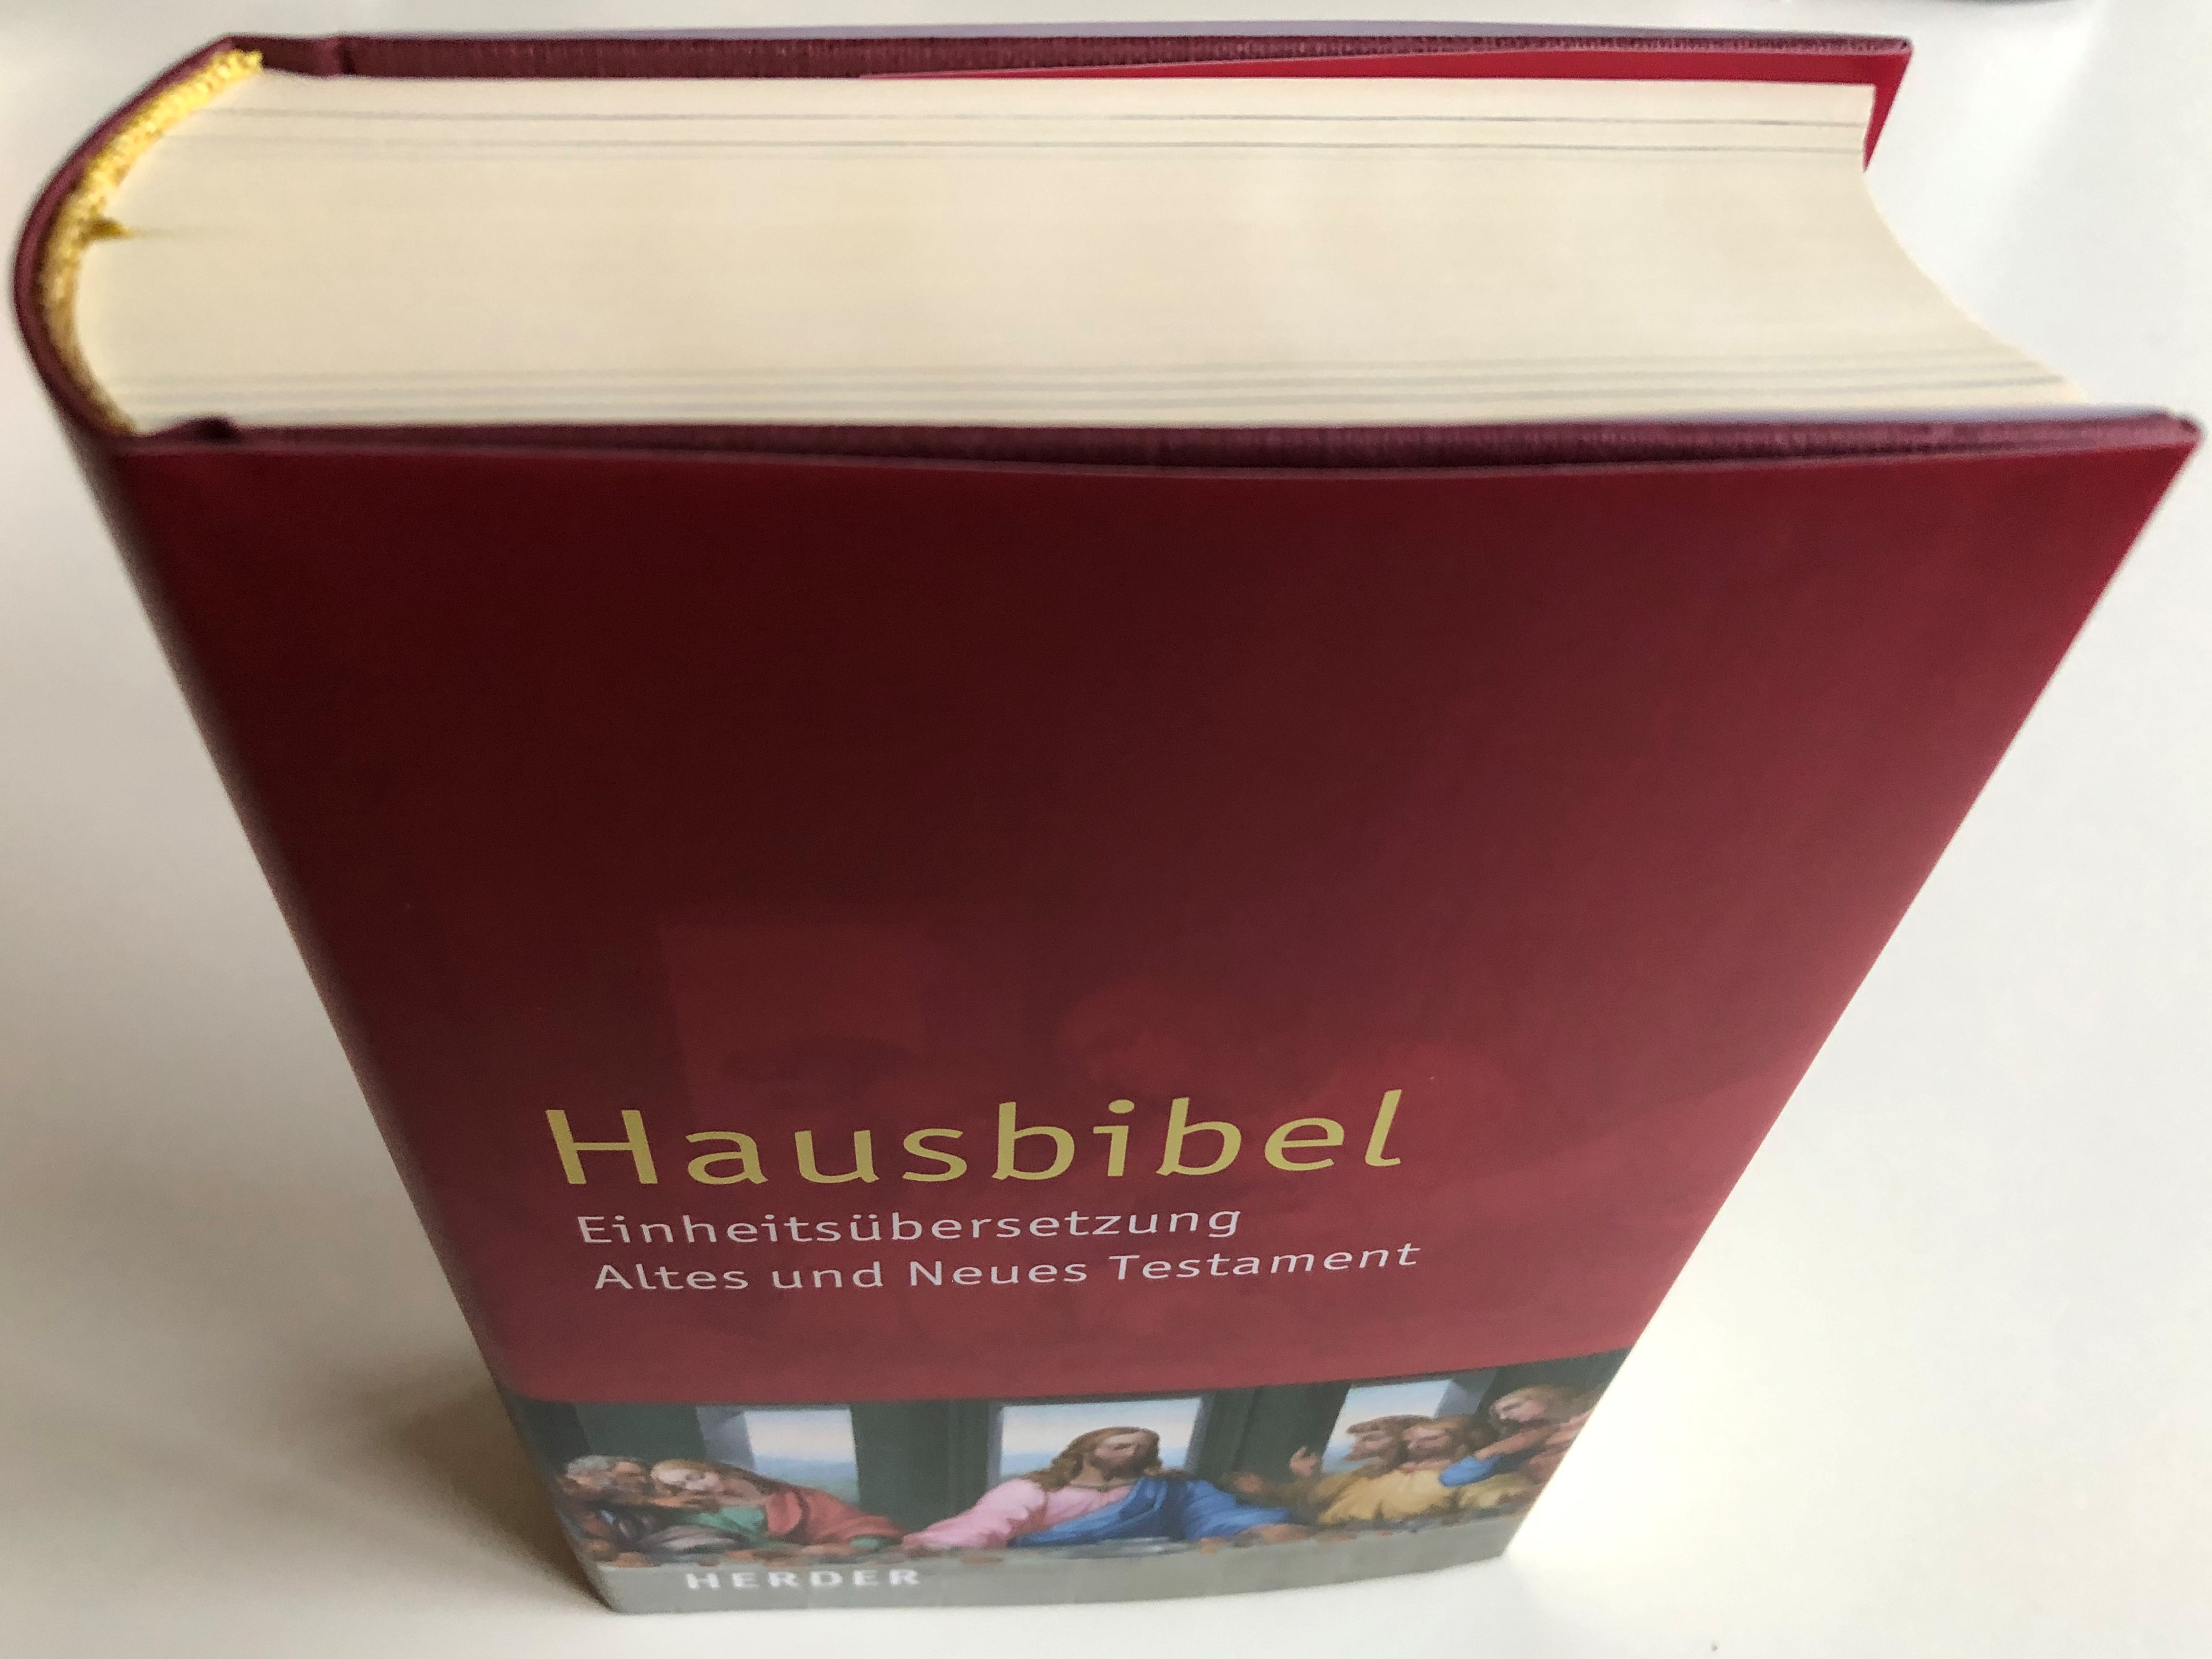 hausbibel-german-language-family-bible-einheits-bersetzung-3.jpg